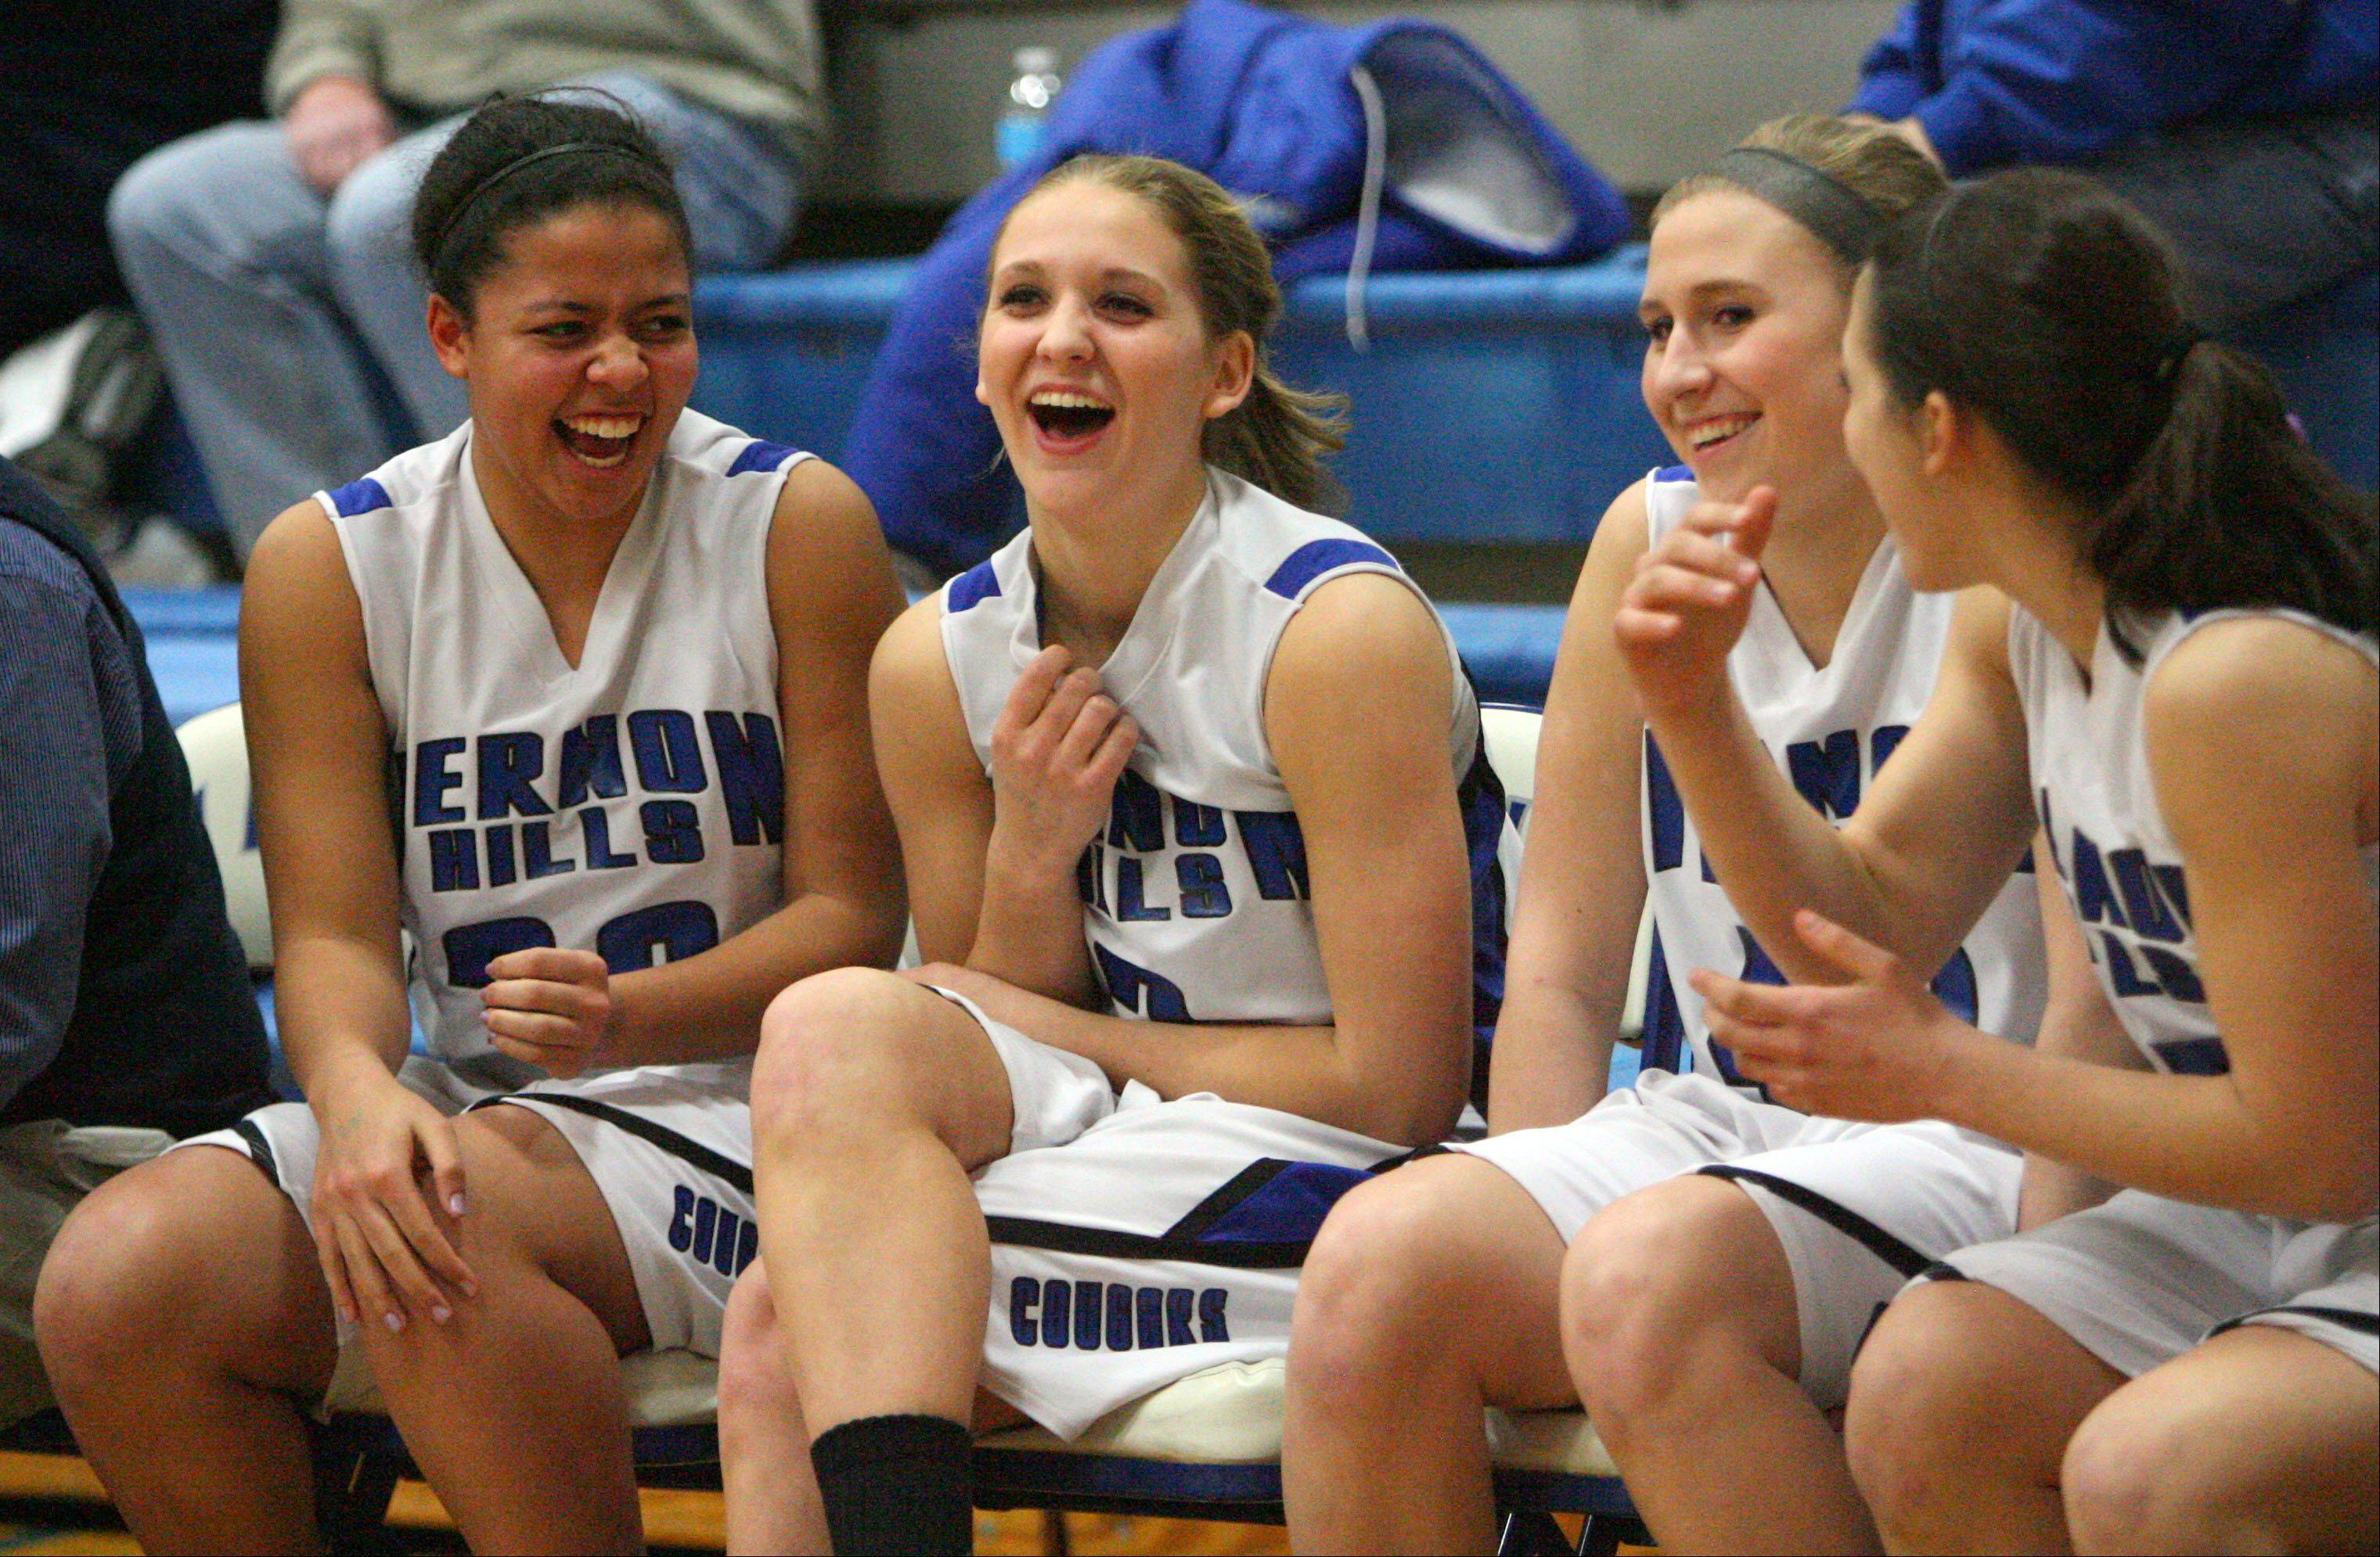 Images from the Grayslake Central vs. Vernon Hills girls basketball game on Tuesday, Feb. 19 in Vernon Hills.